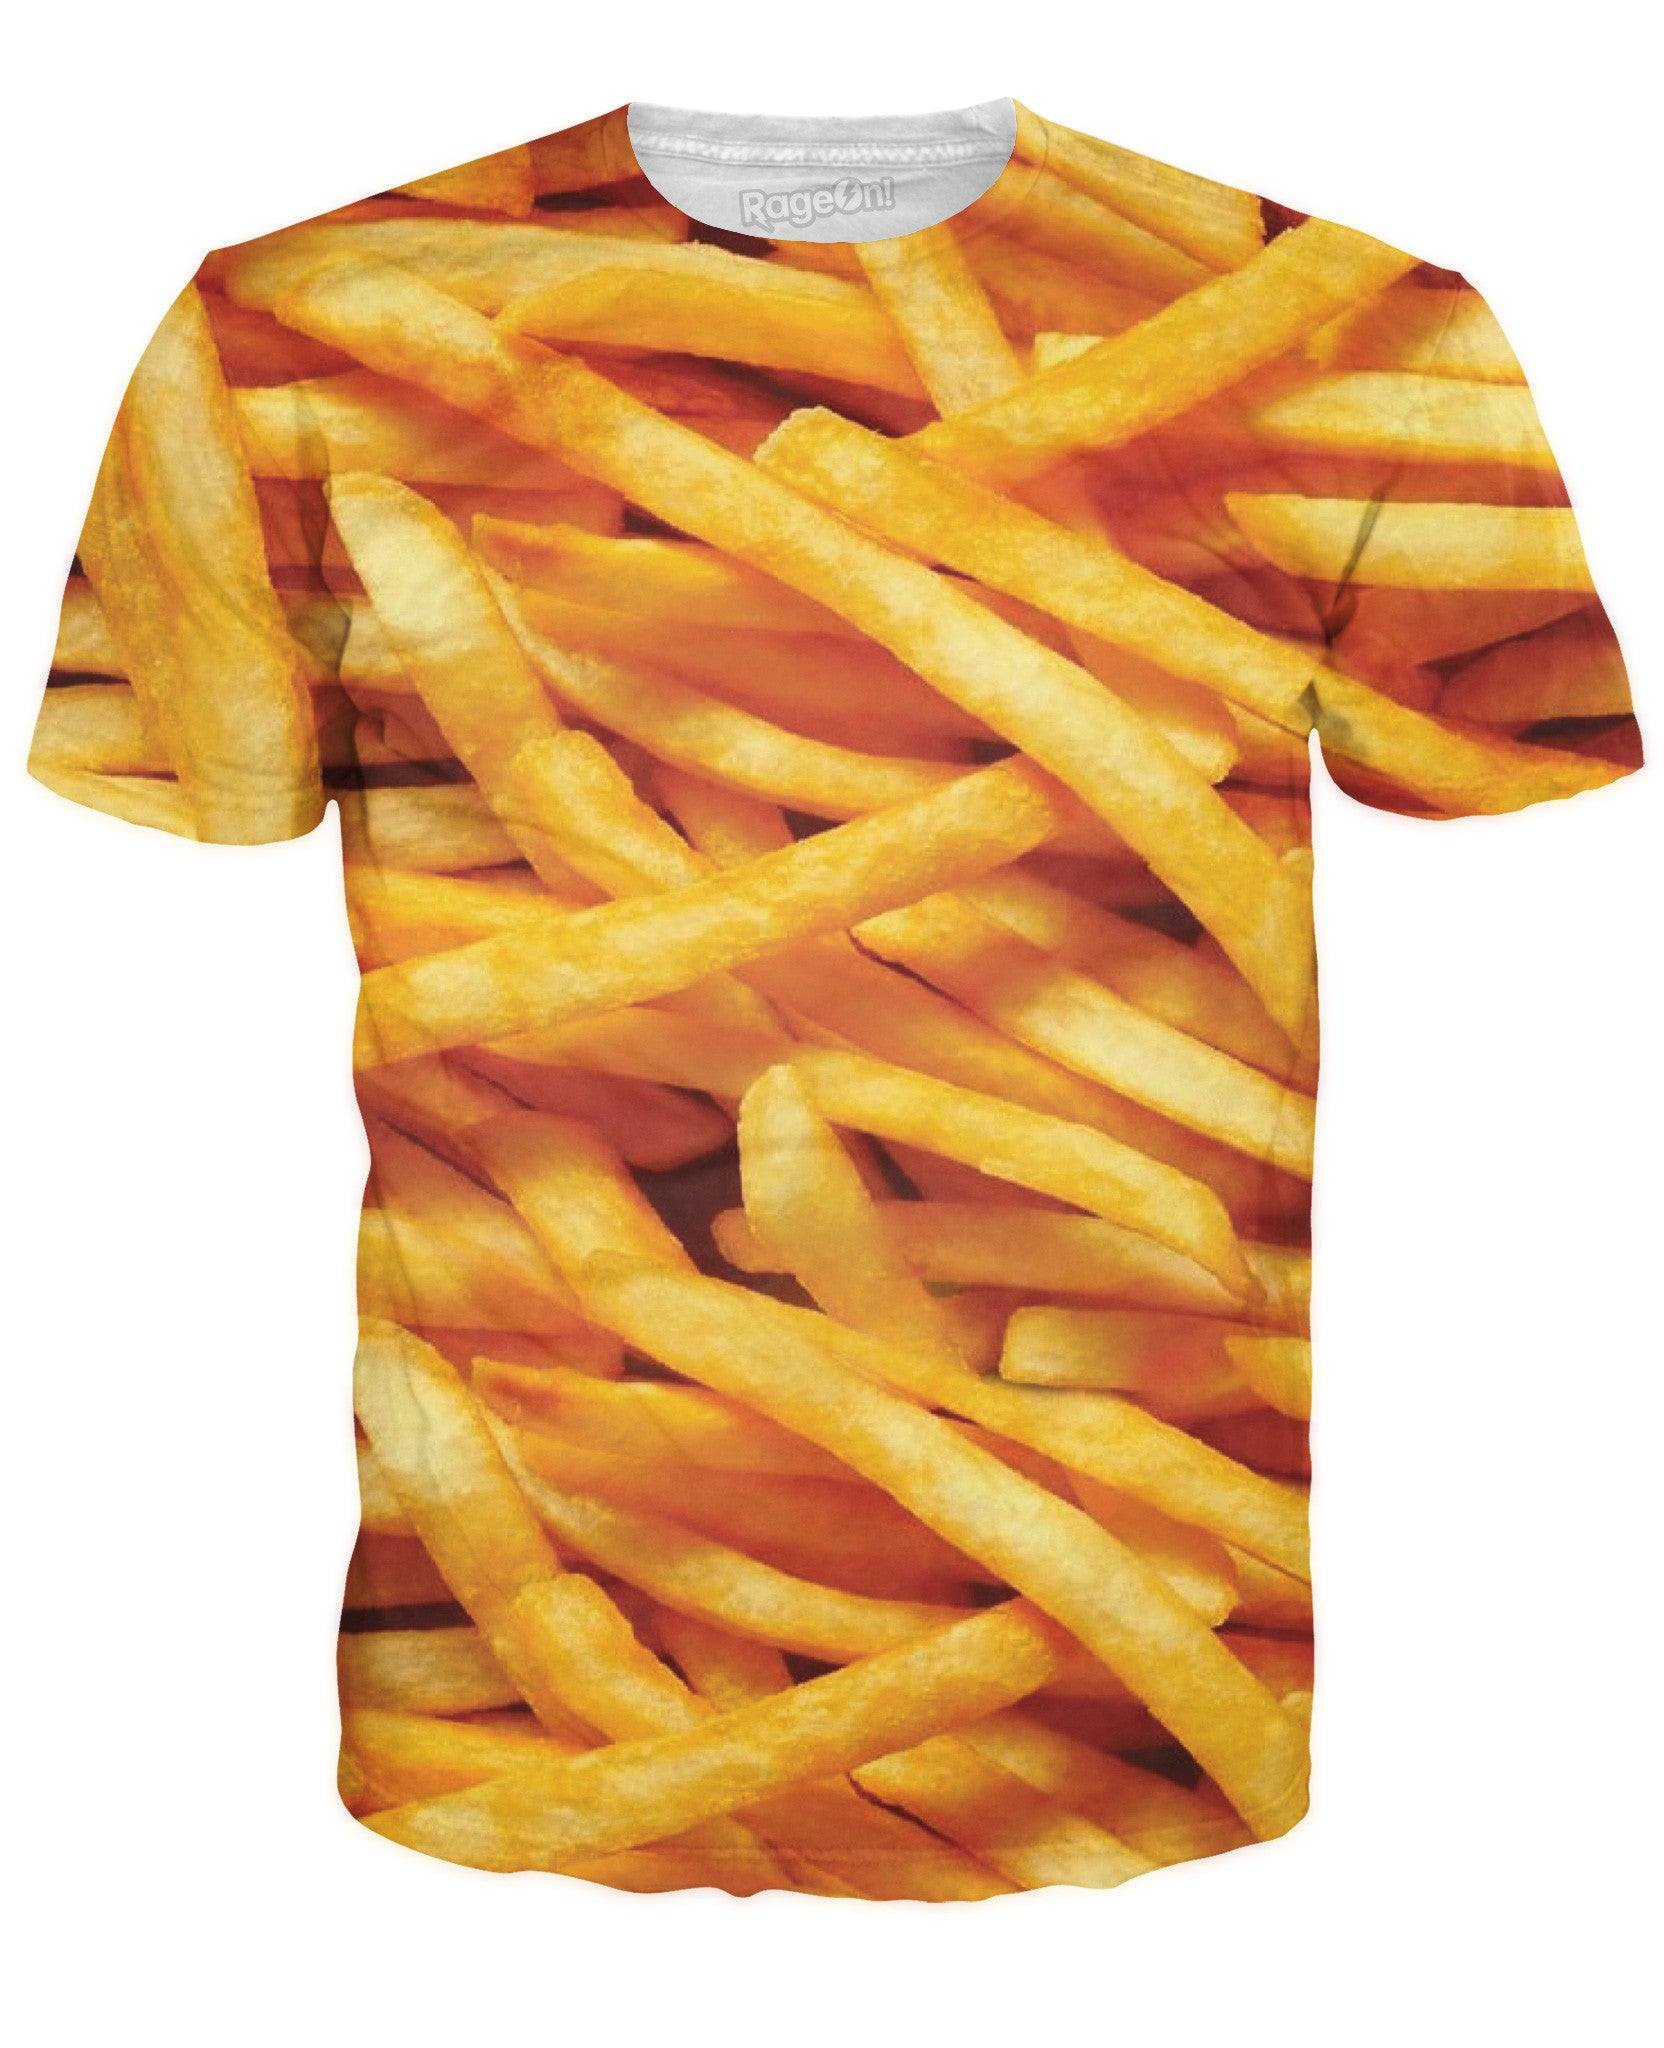 French Fries T-Shirt - TShirtsRUS.co